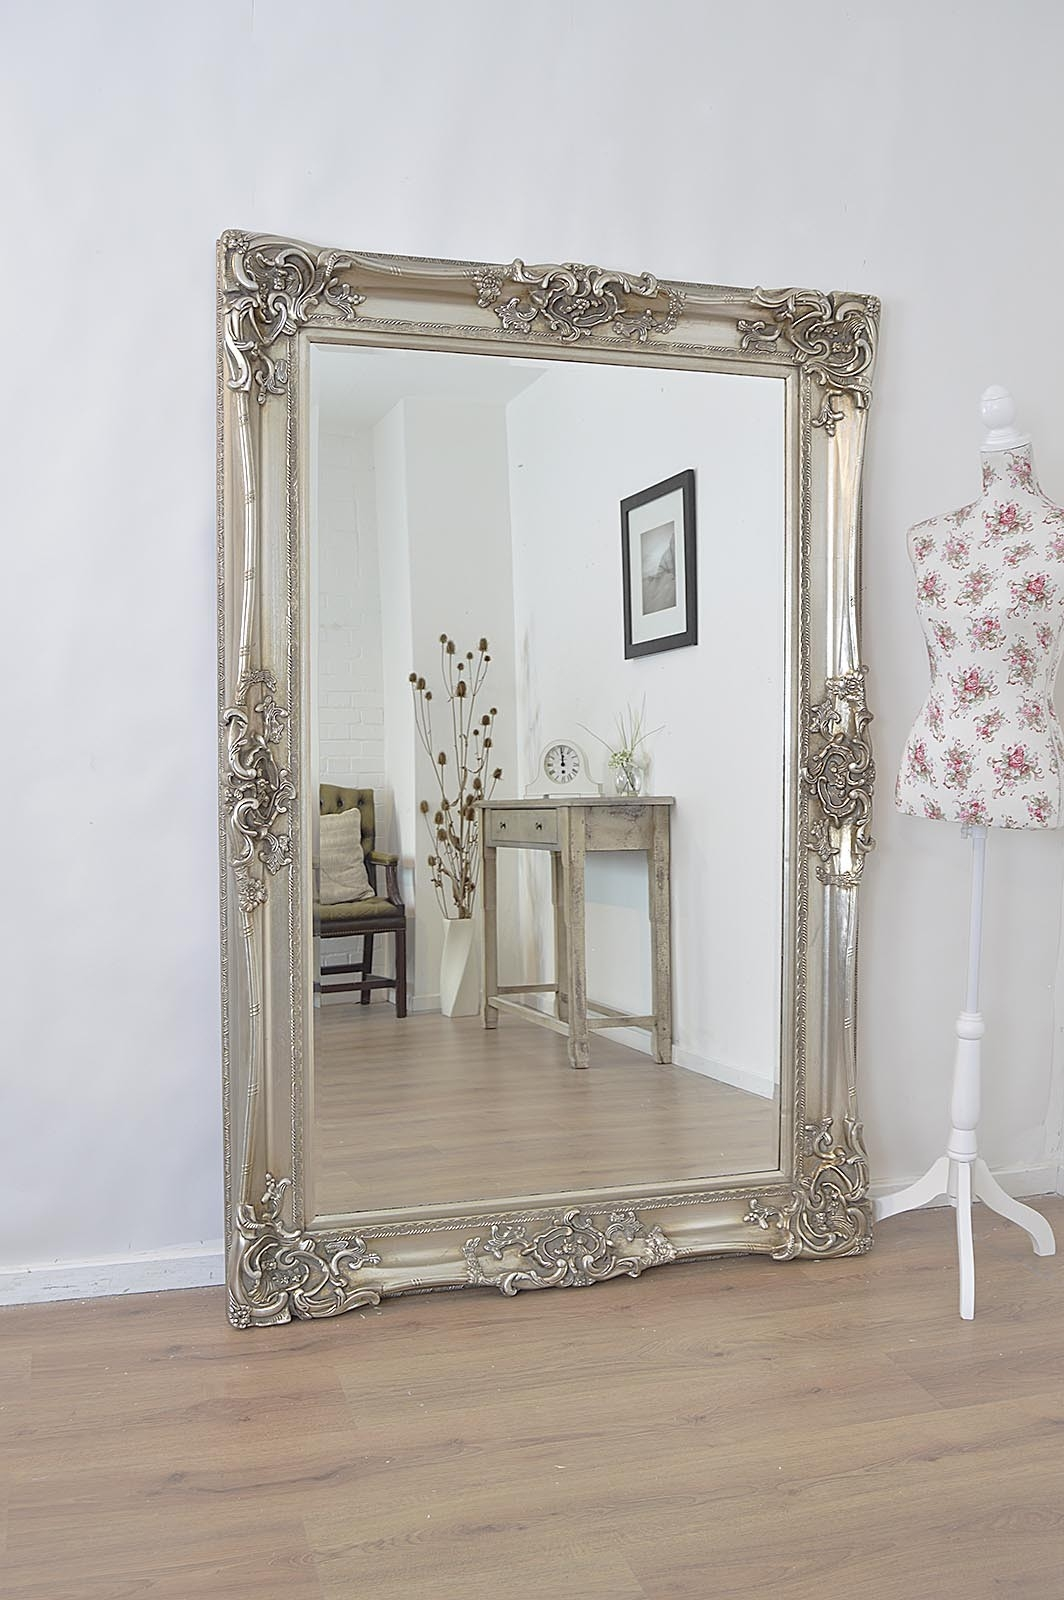 14 Ornate Antique Mirrors Mirror Ideas